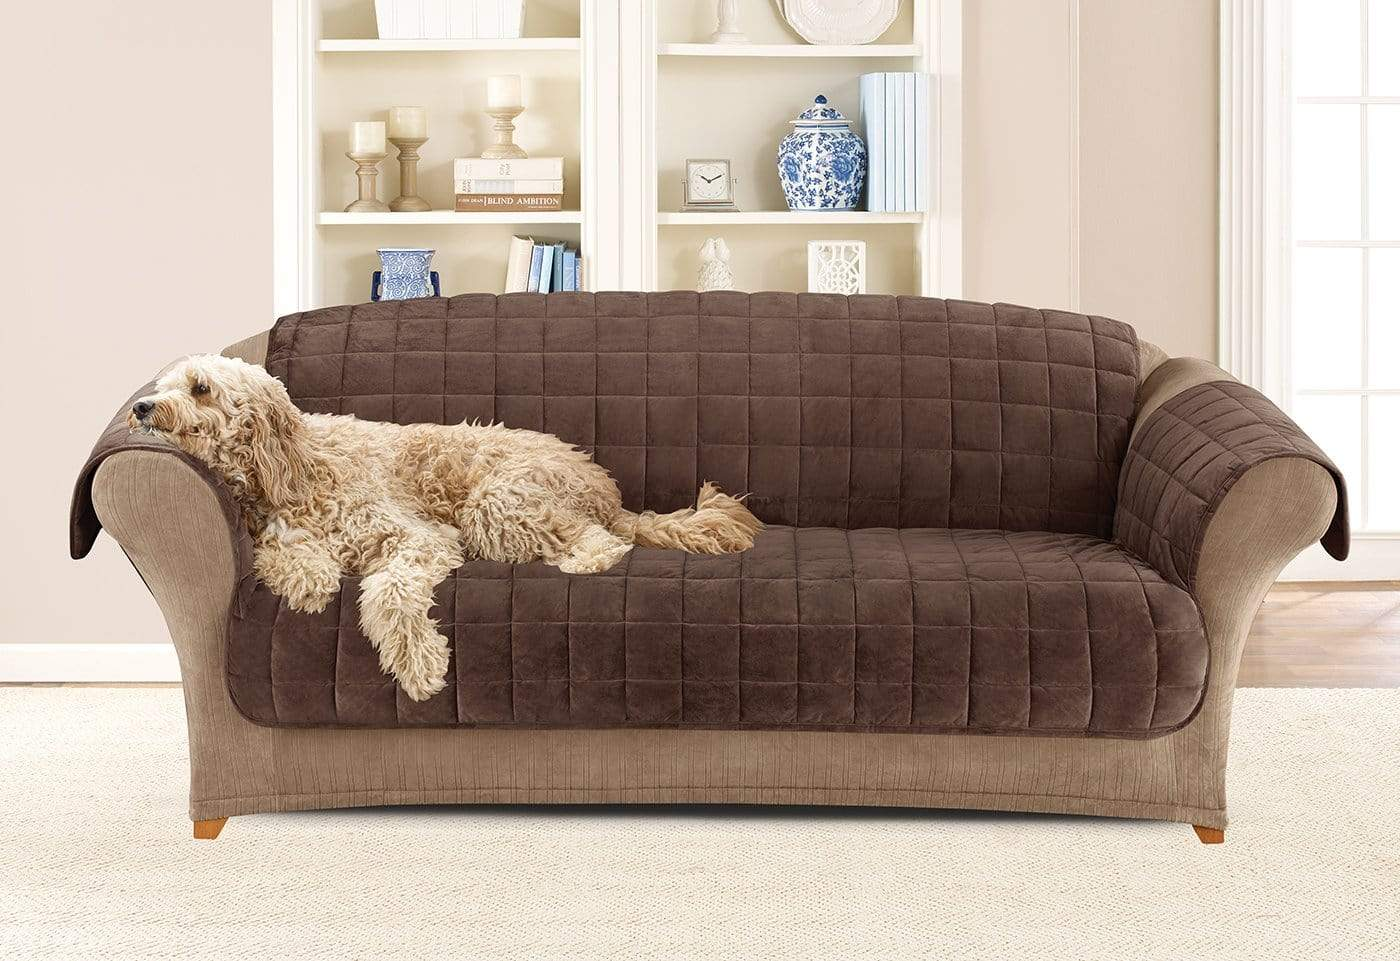 Deluxe Comfort Sofa Furniture Cover With Arms Microban® Antimicrobial Pet Furniture Cover Machine Washable - Sofa / Chocolate